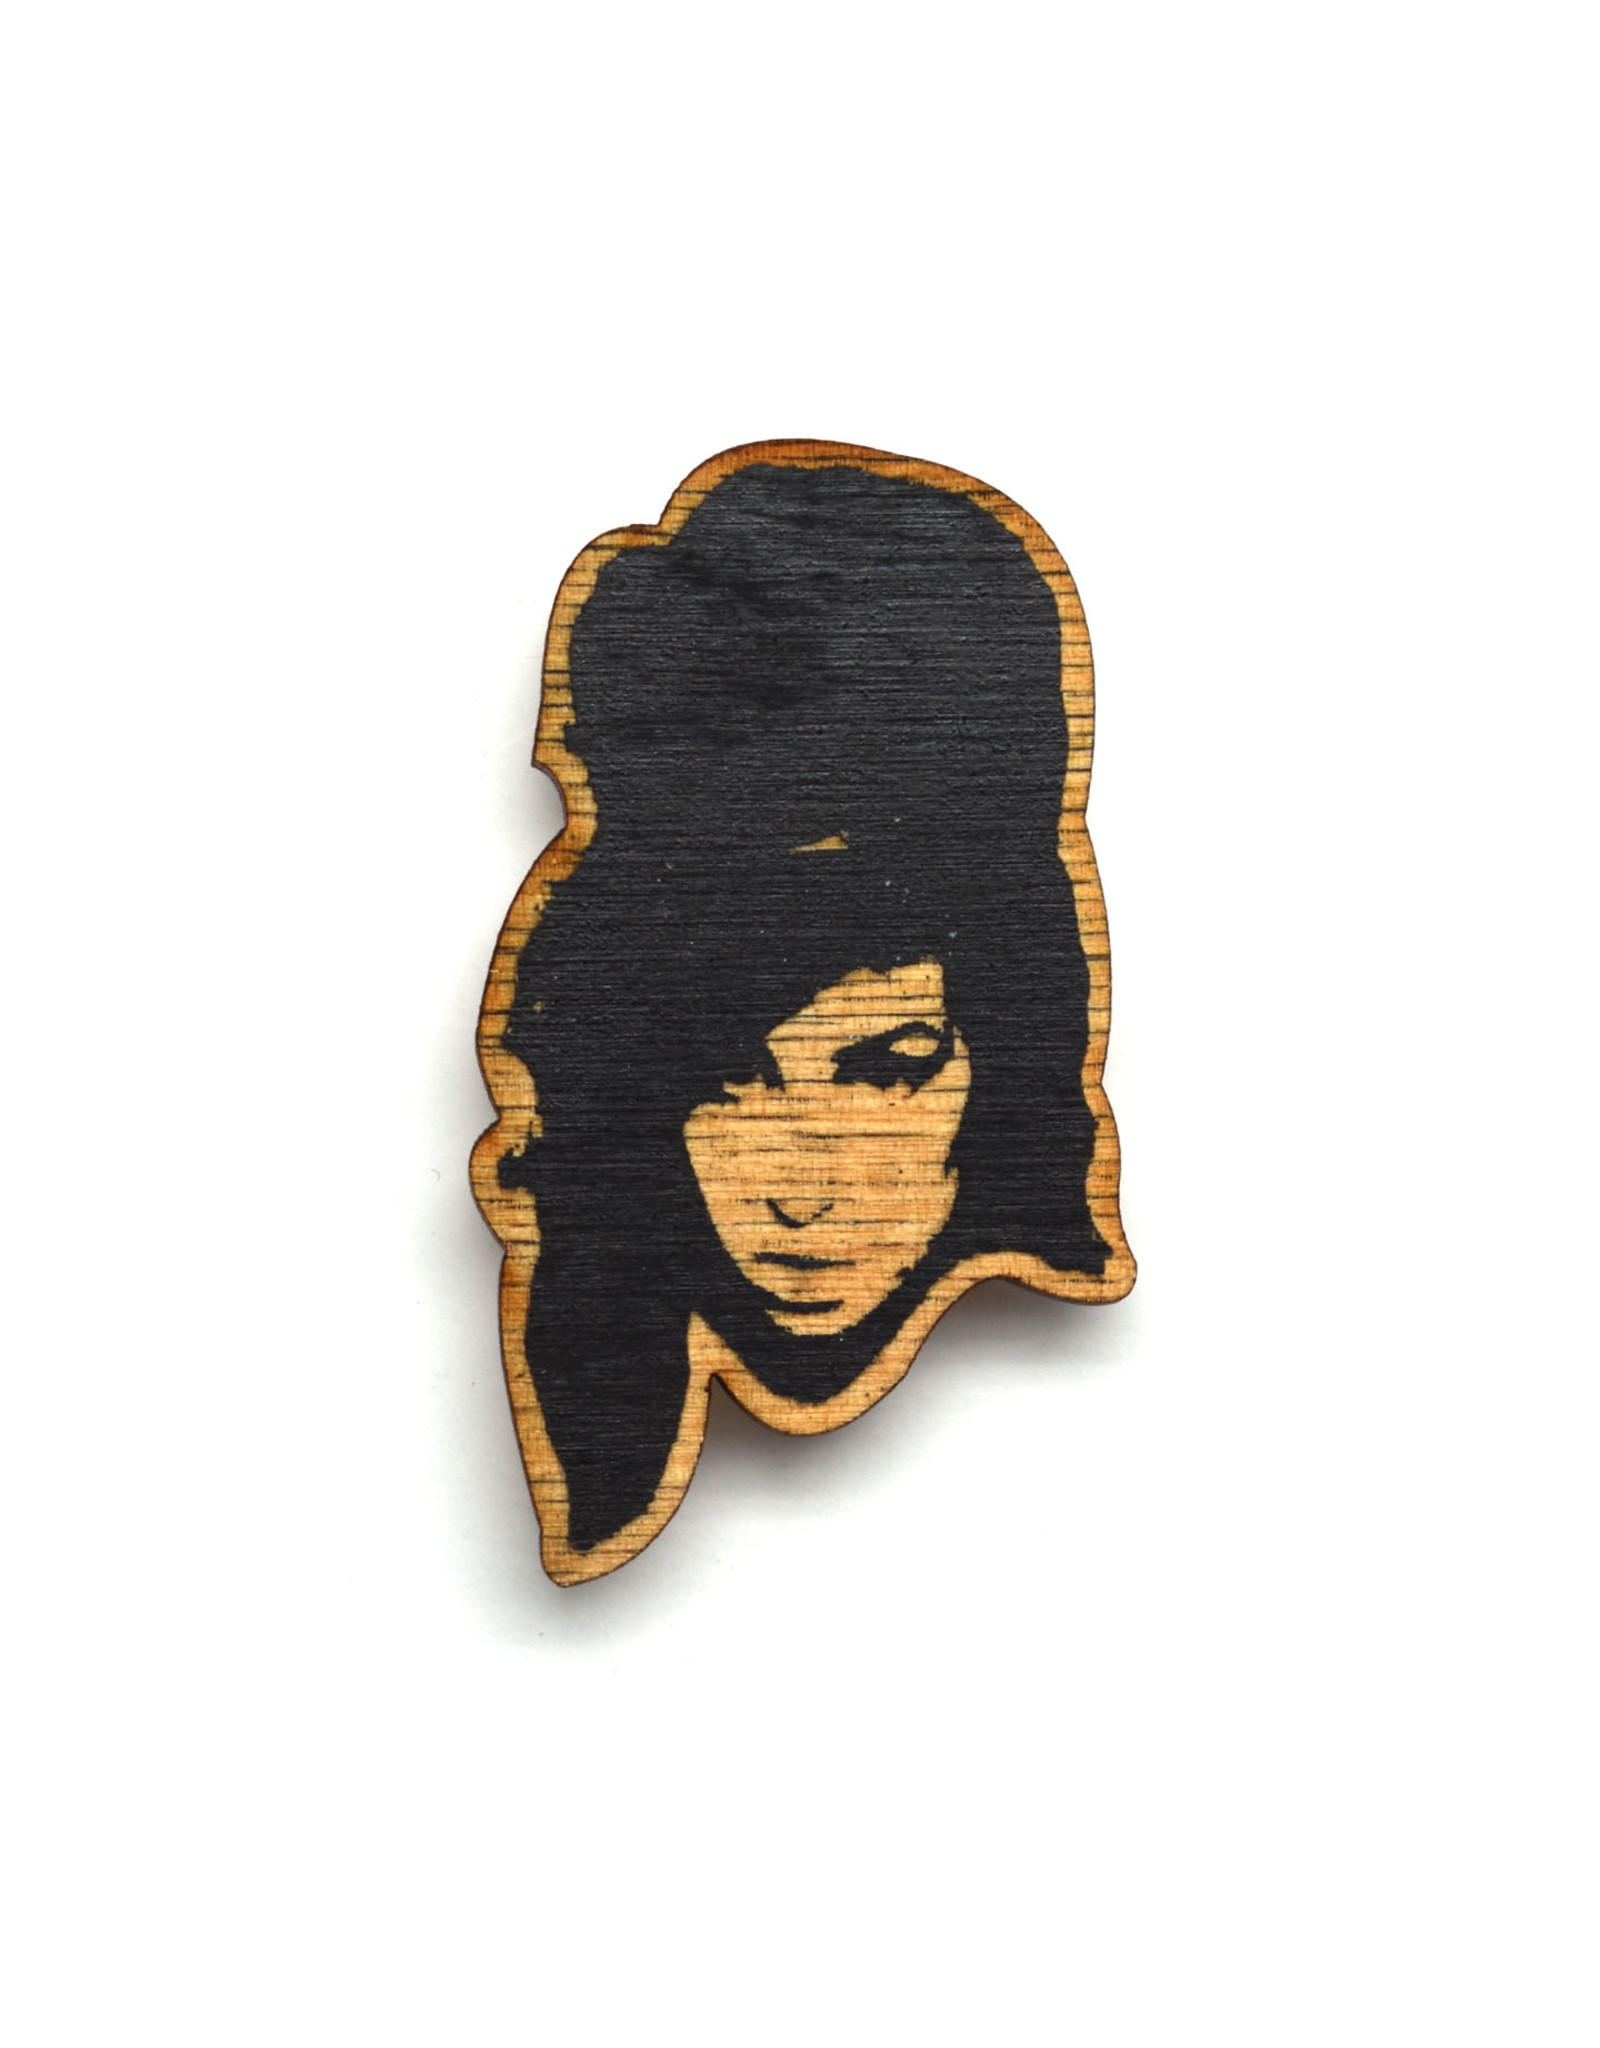 Amy Winehouse Wooden Magnet